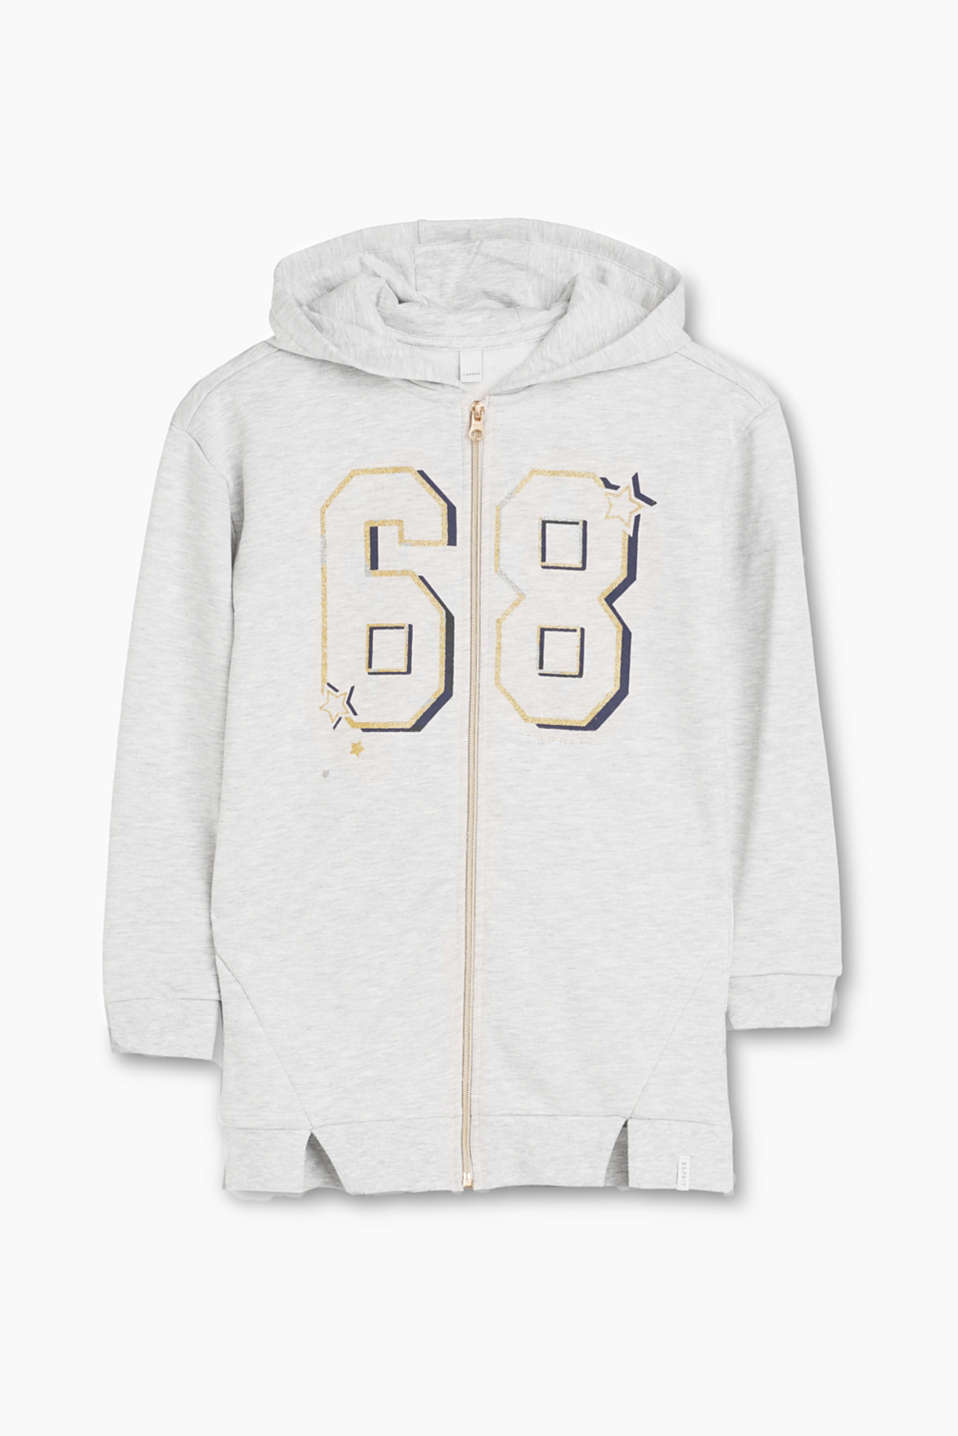 With that certain touch of girliness: hooded sweatshirt jacket with sparkly printed numbers and a gold metal zip